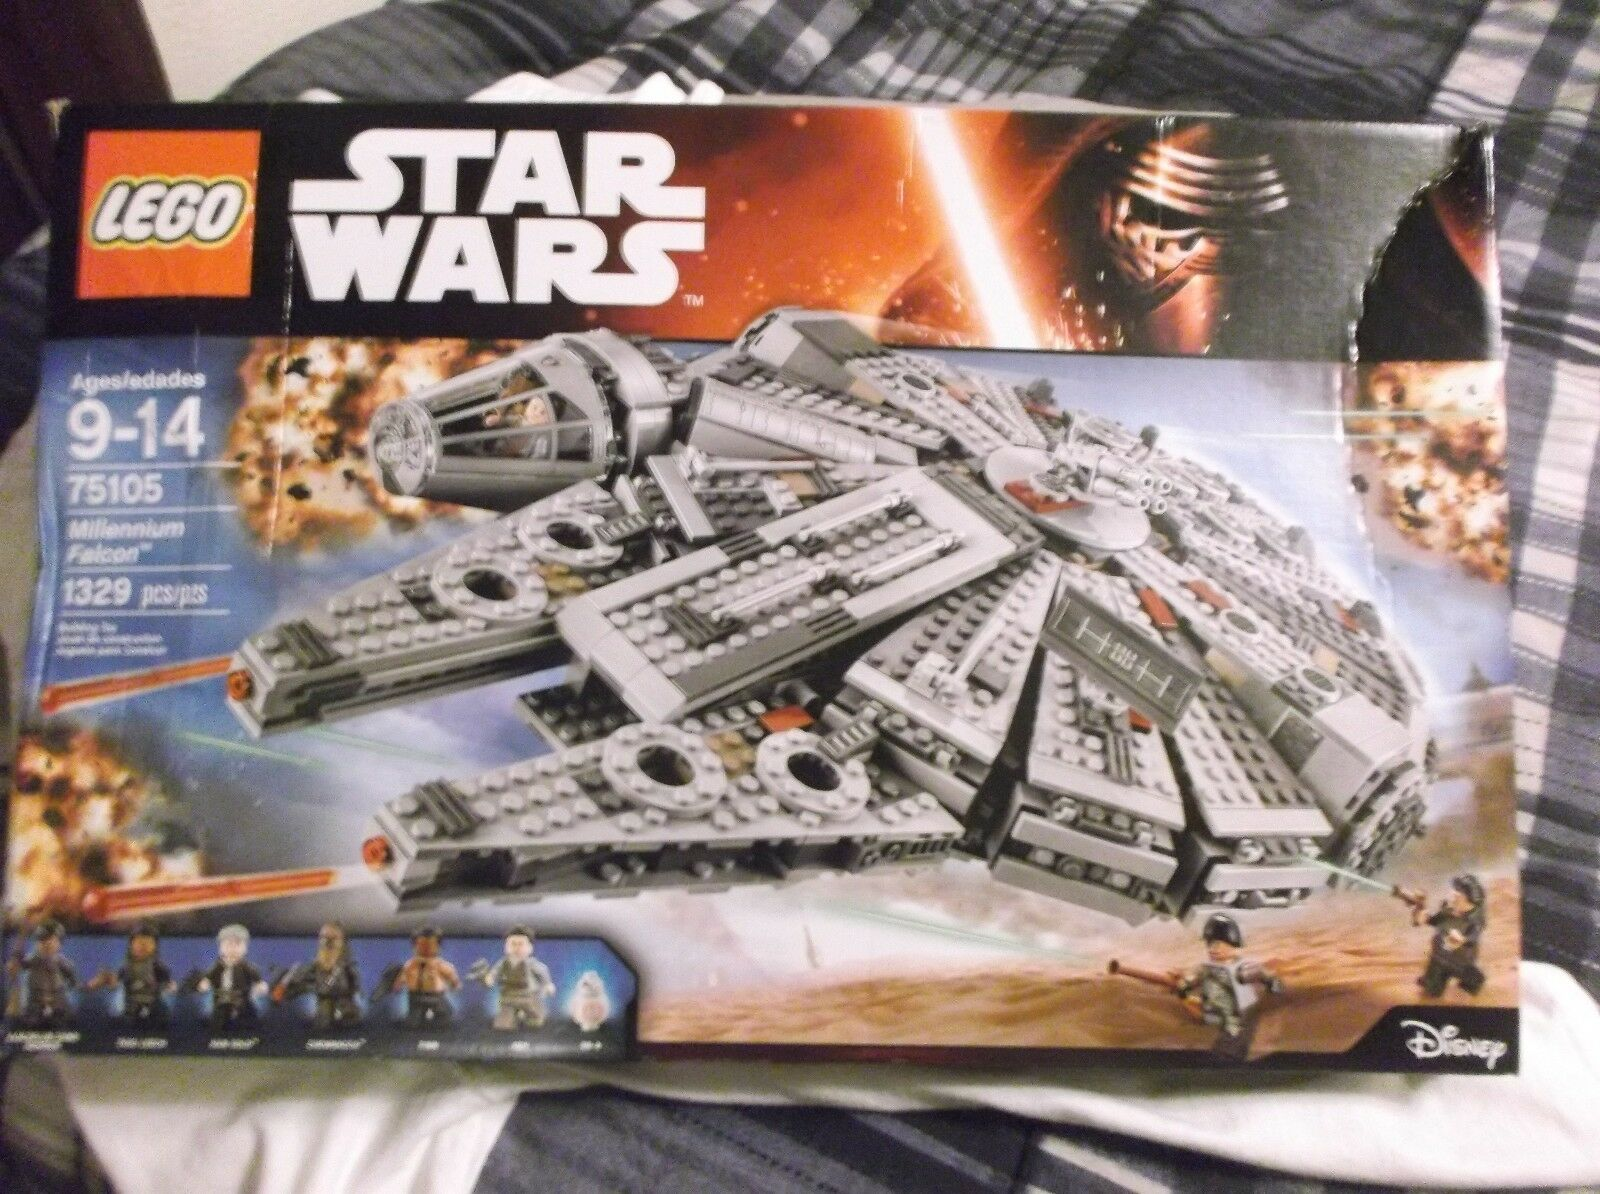 LEGO Star Wars Millennium Falcon Starship 75105 Force Awakens Building Toy Set